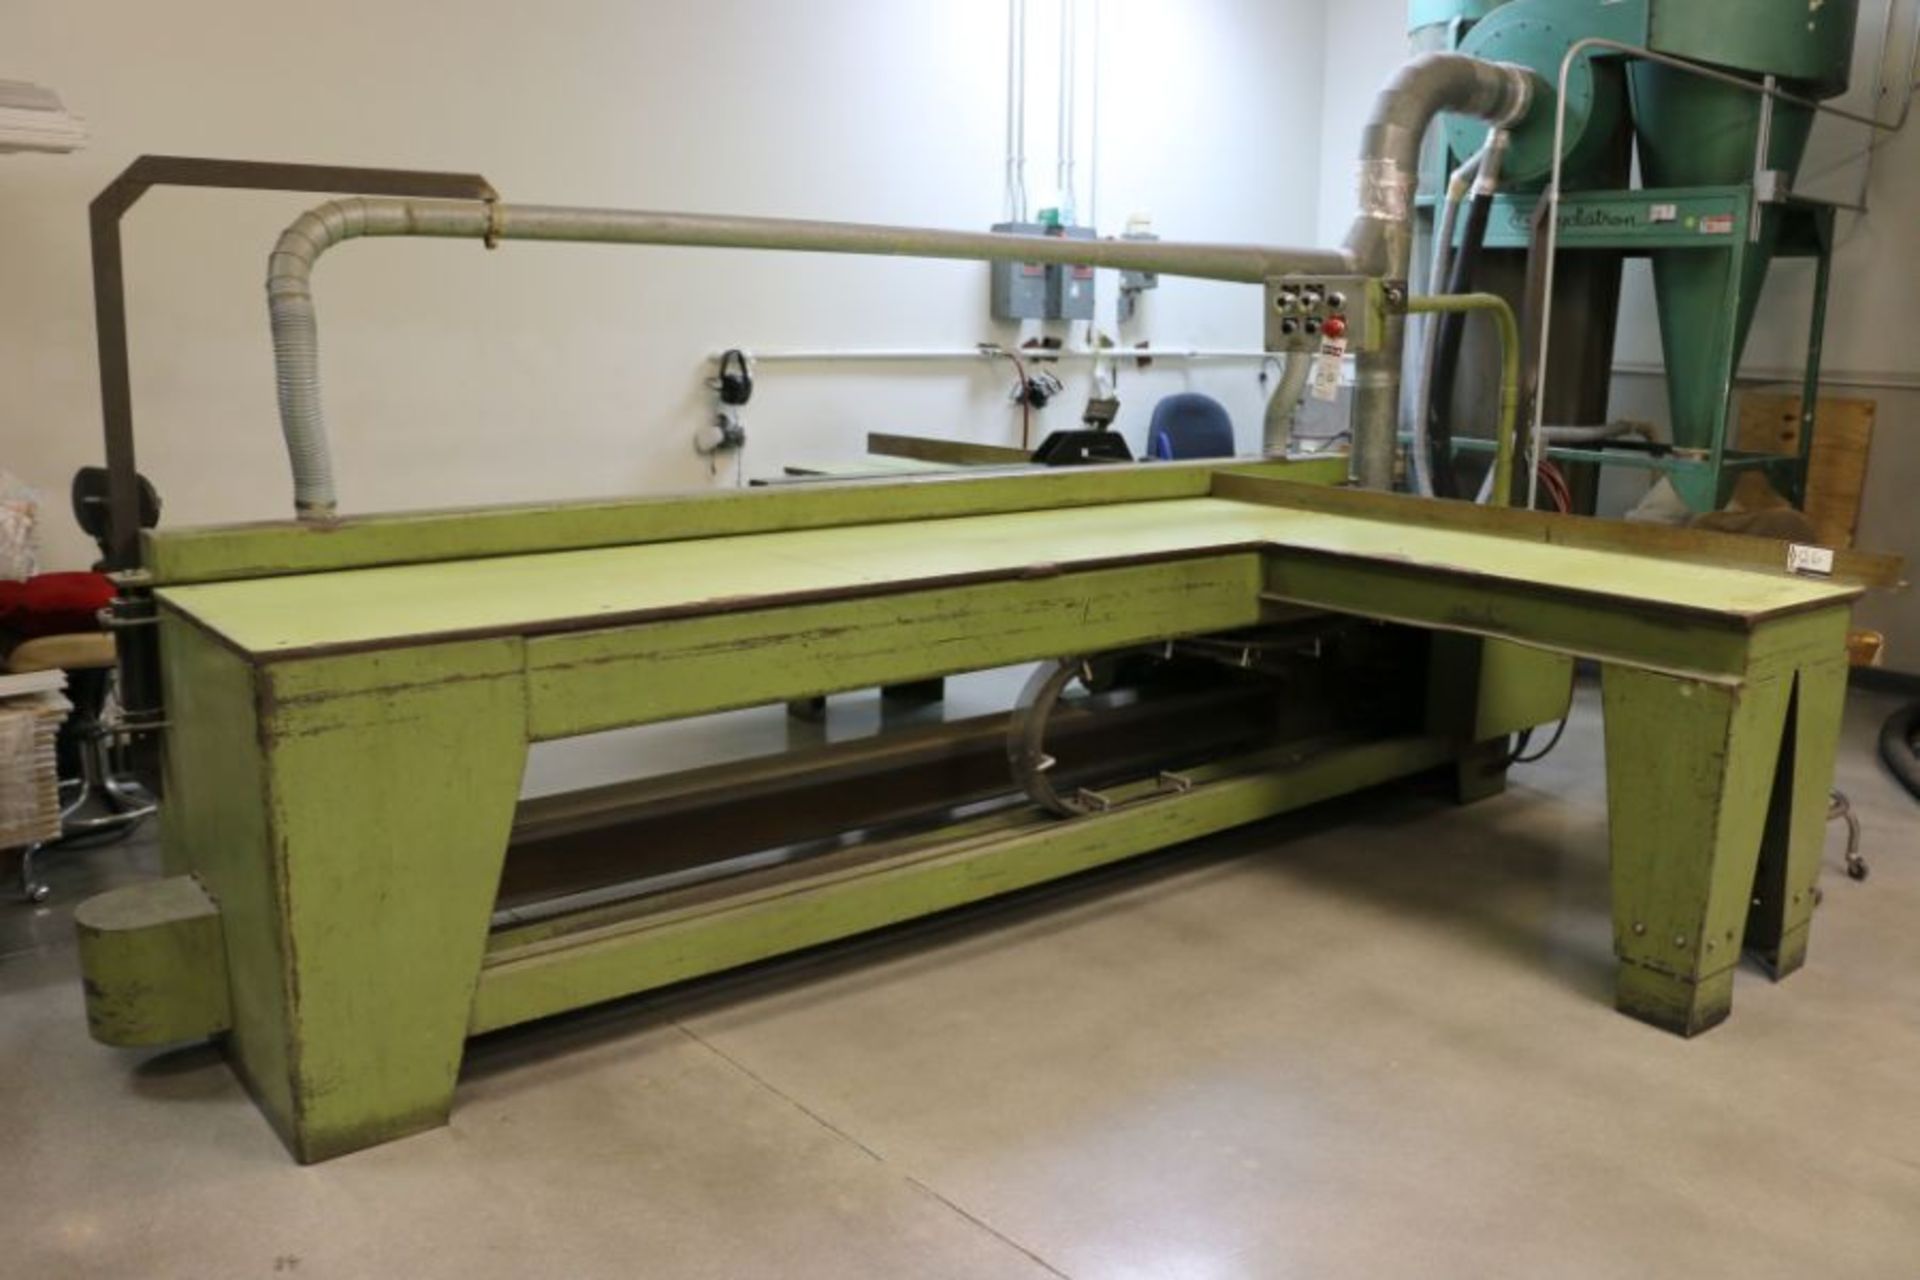 Cain Machine & Tool 360 H8 Panel Saw with Accurate ProScale DRO